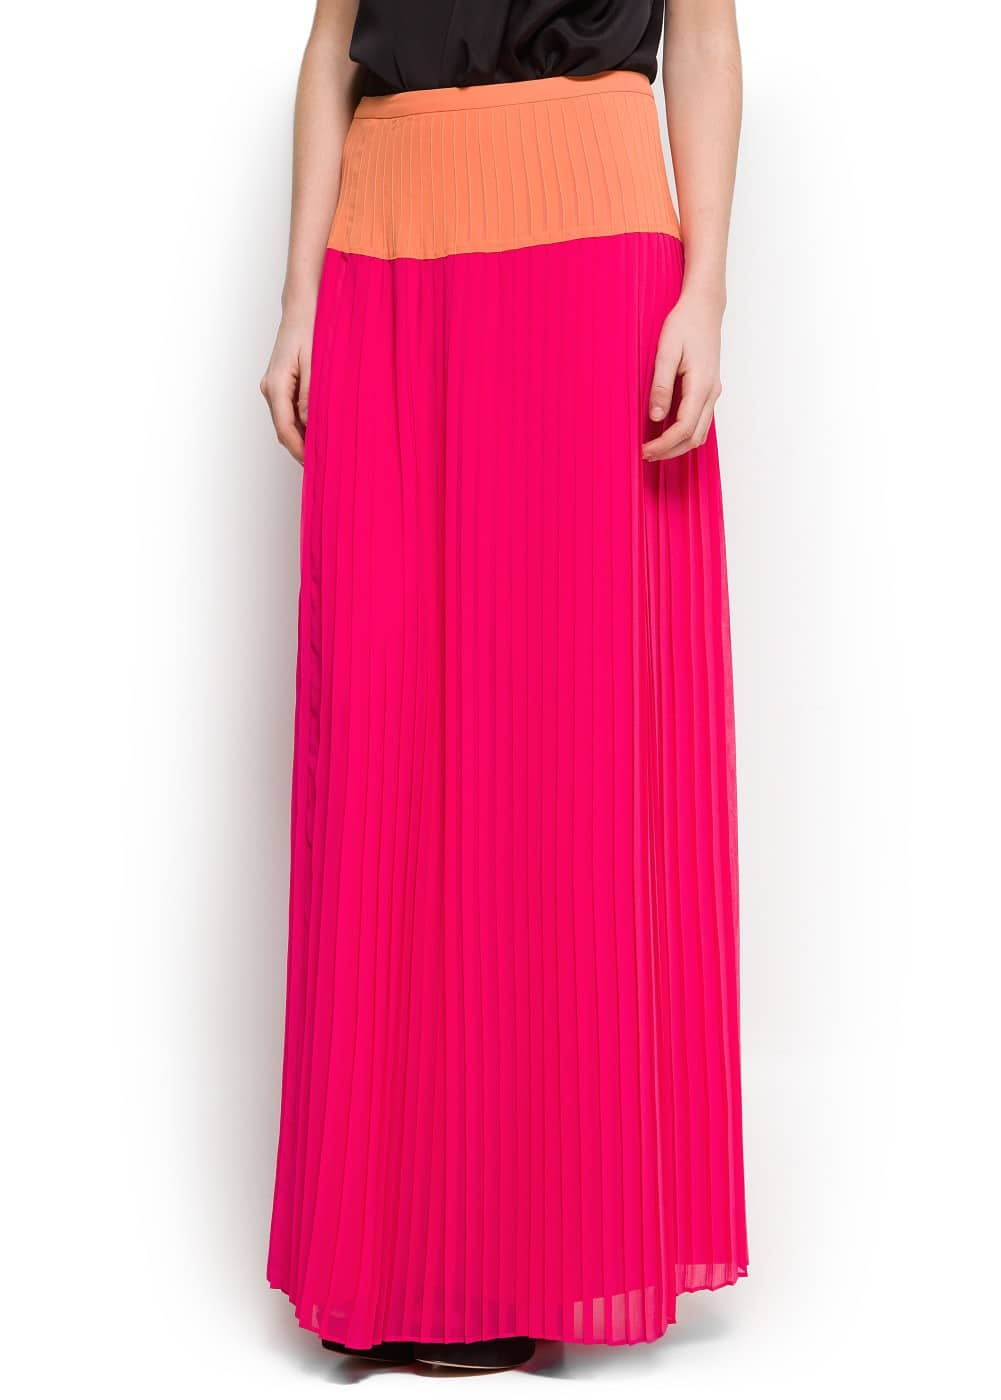 Two-tone long skirt